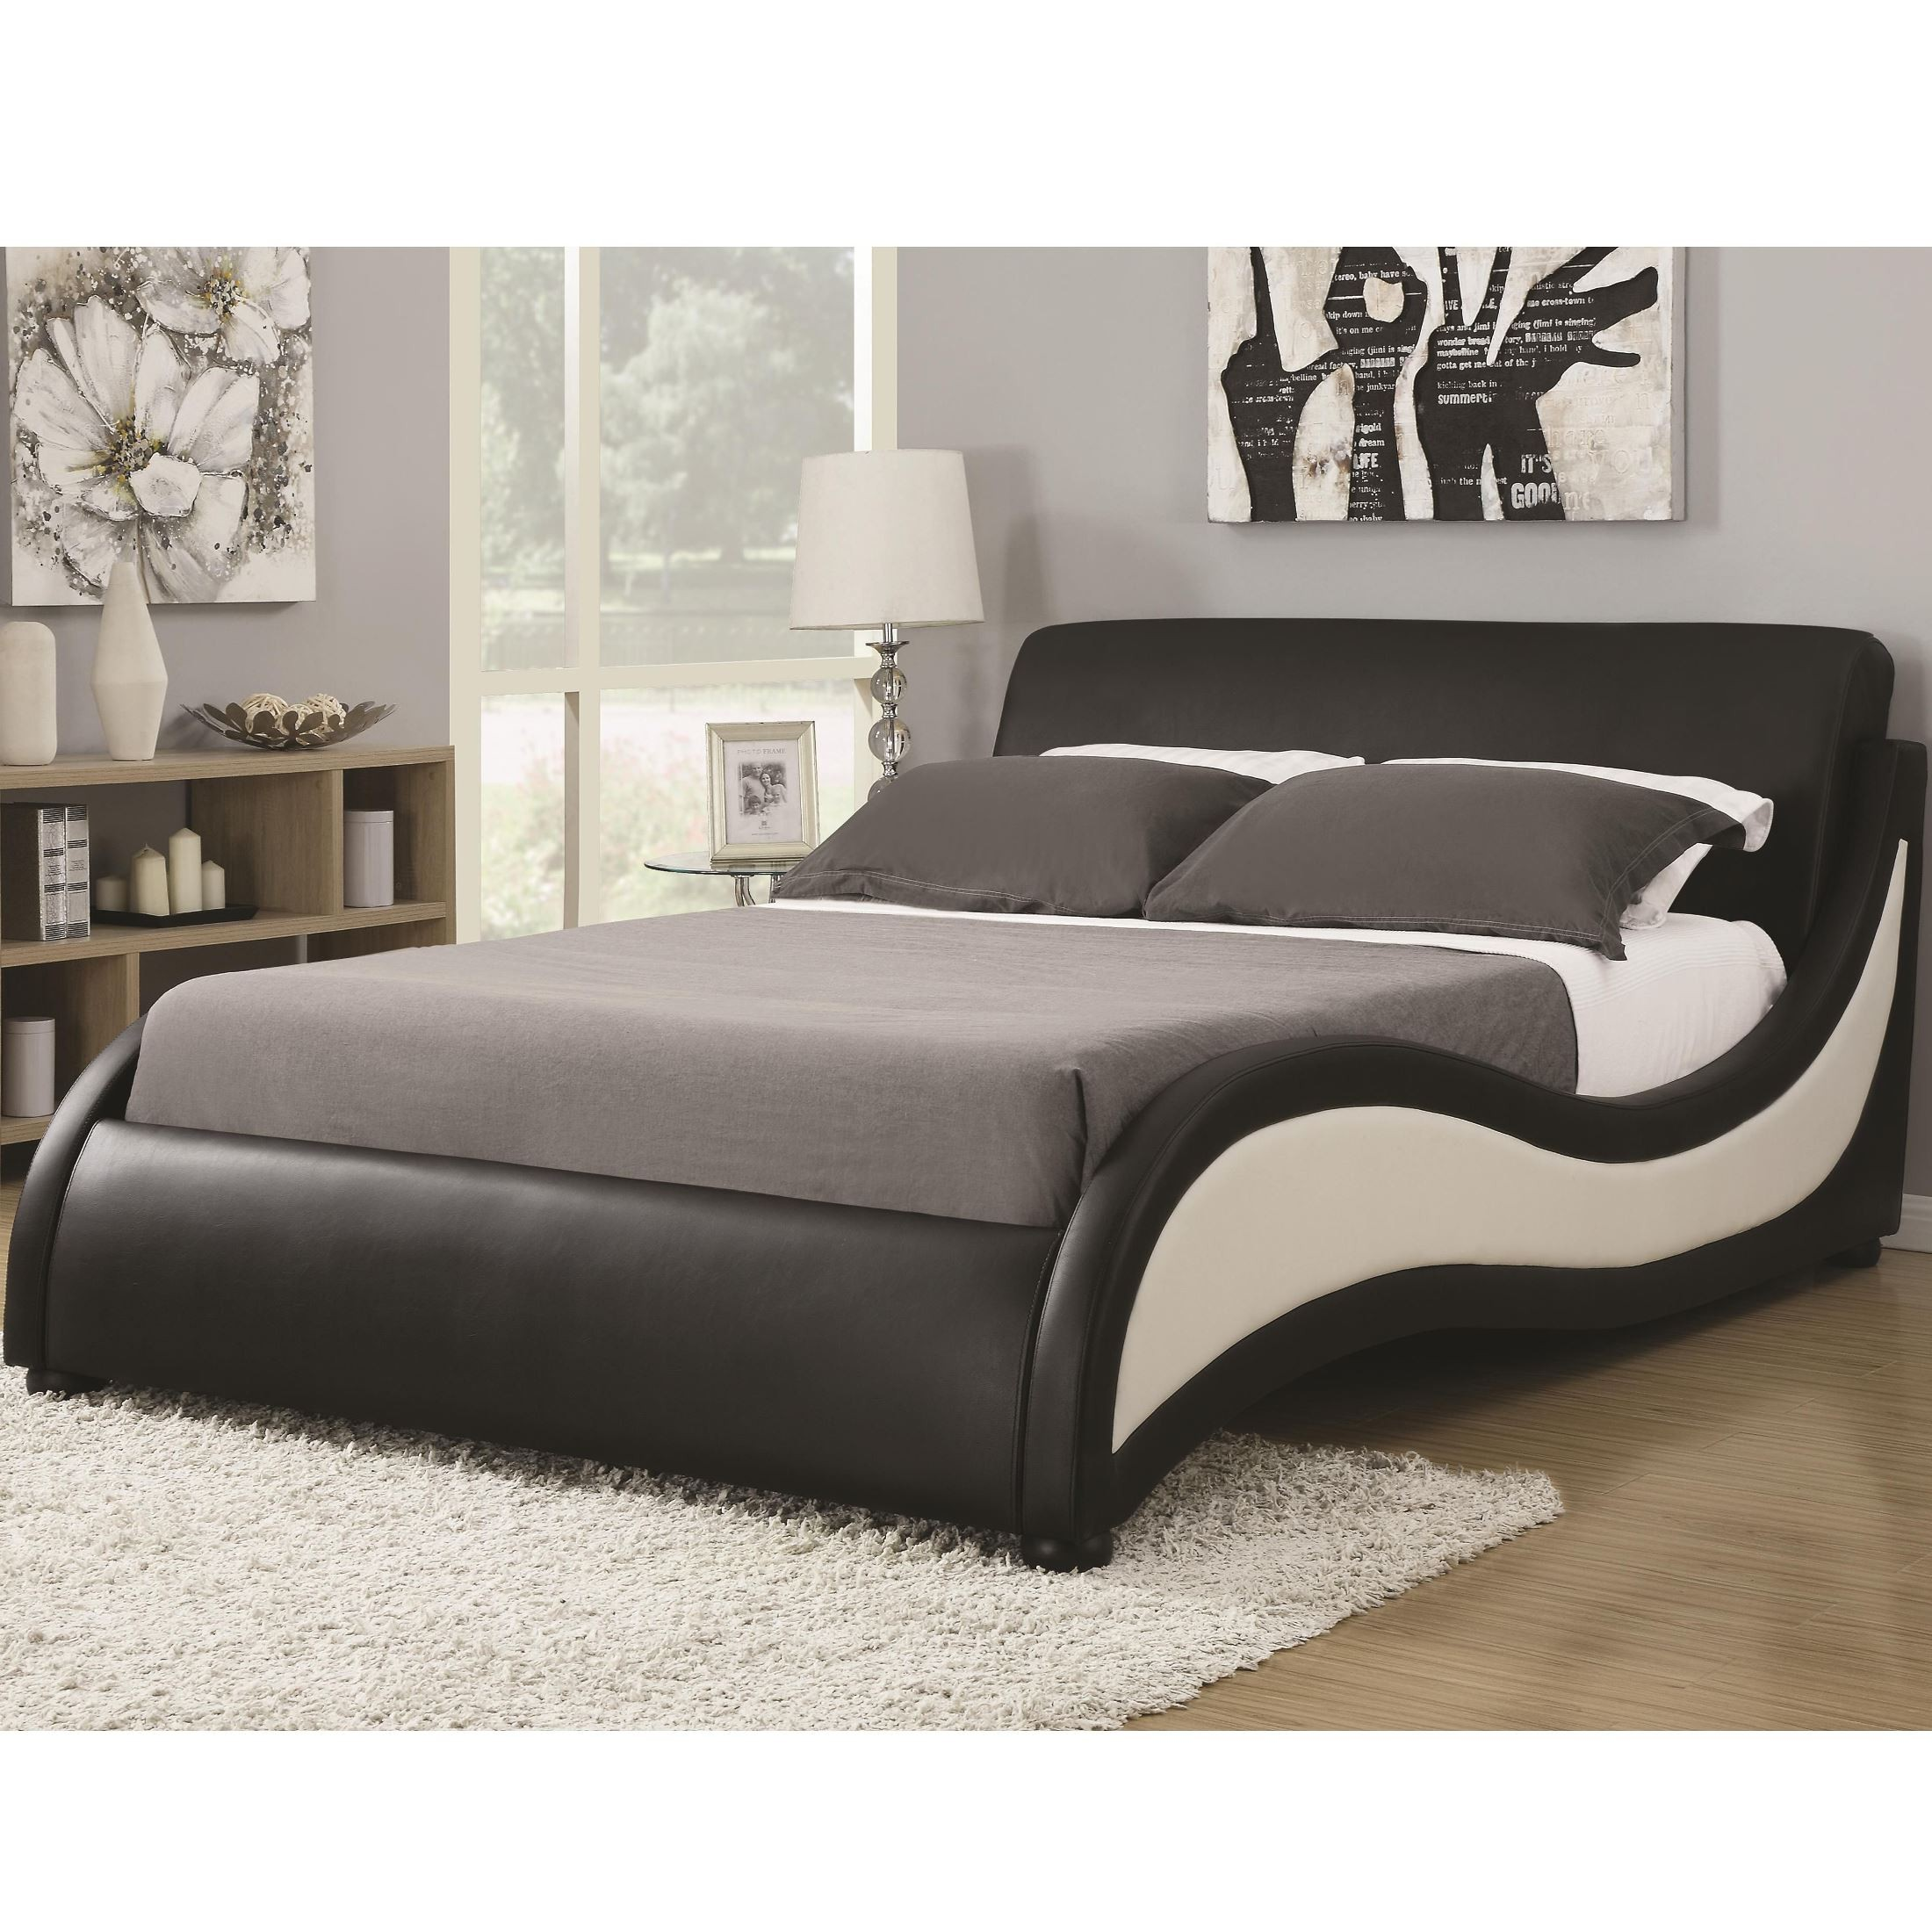 Niguel modern queen upholstered platform bed 605288